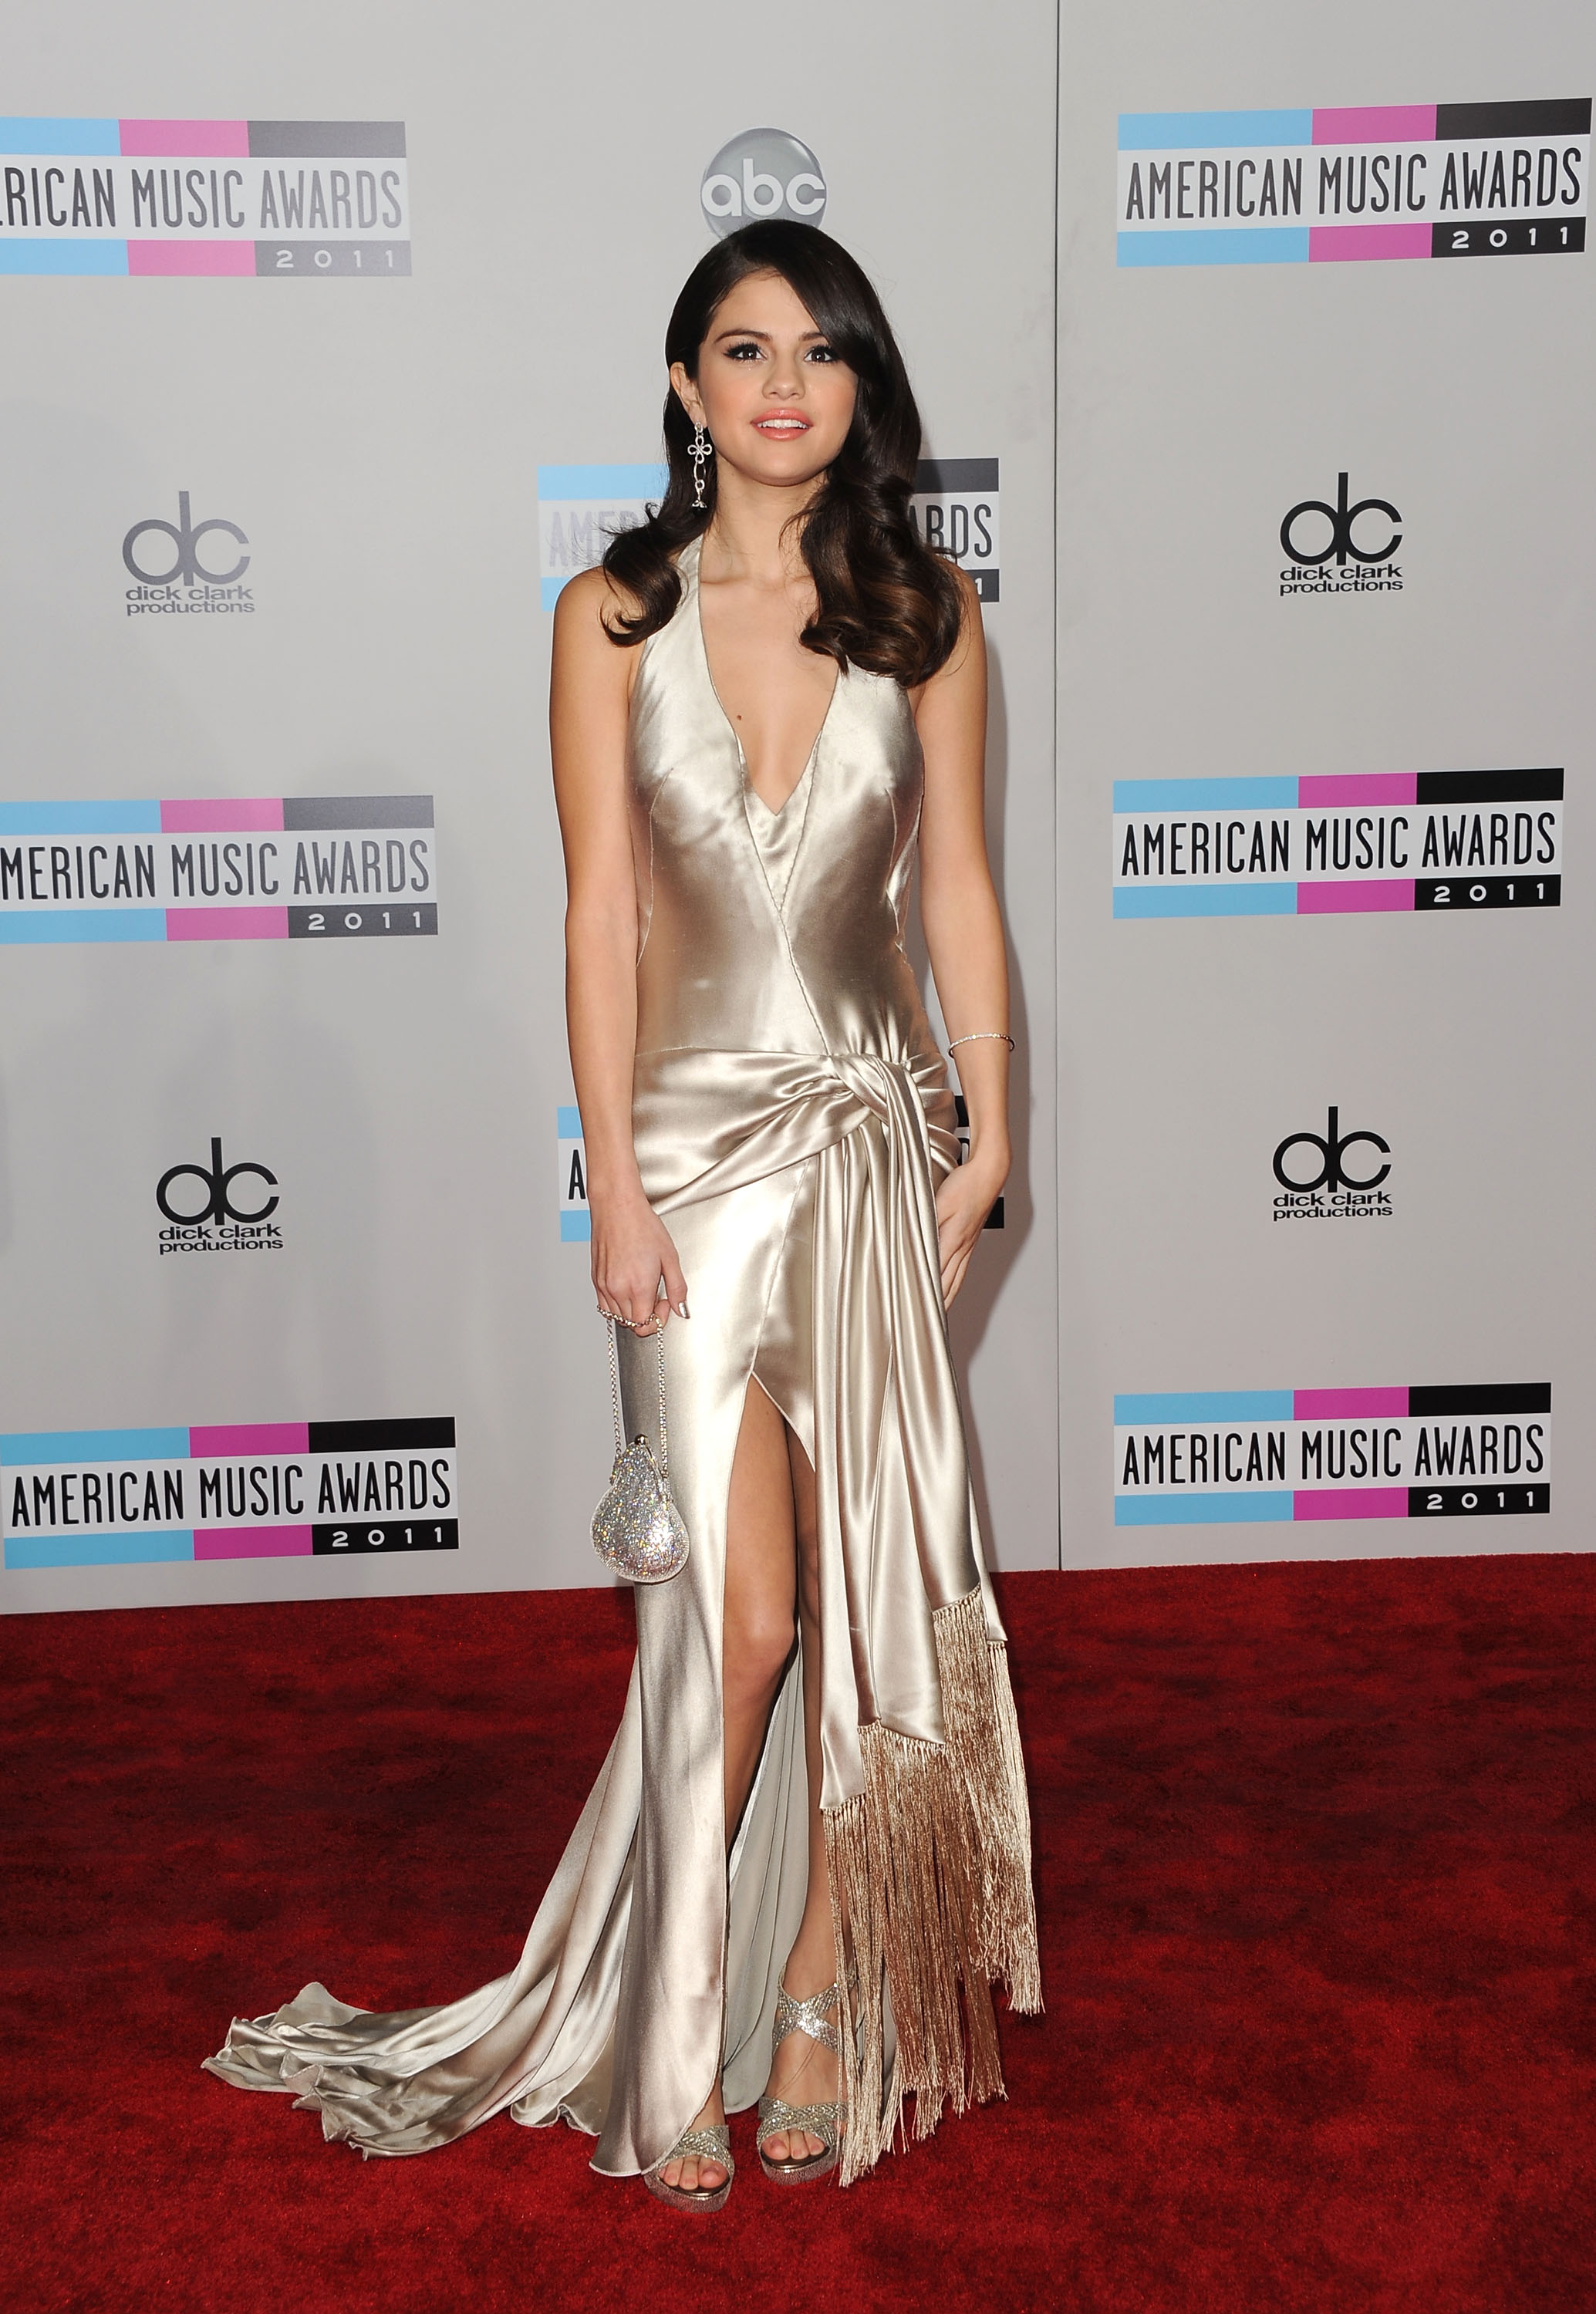 Selena Gomez – Cleavage Candids at 2011 American Music Awards in LA -01